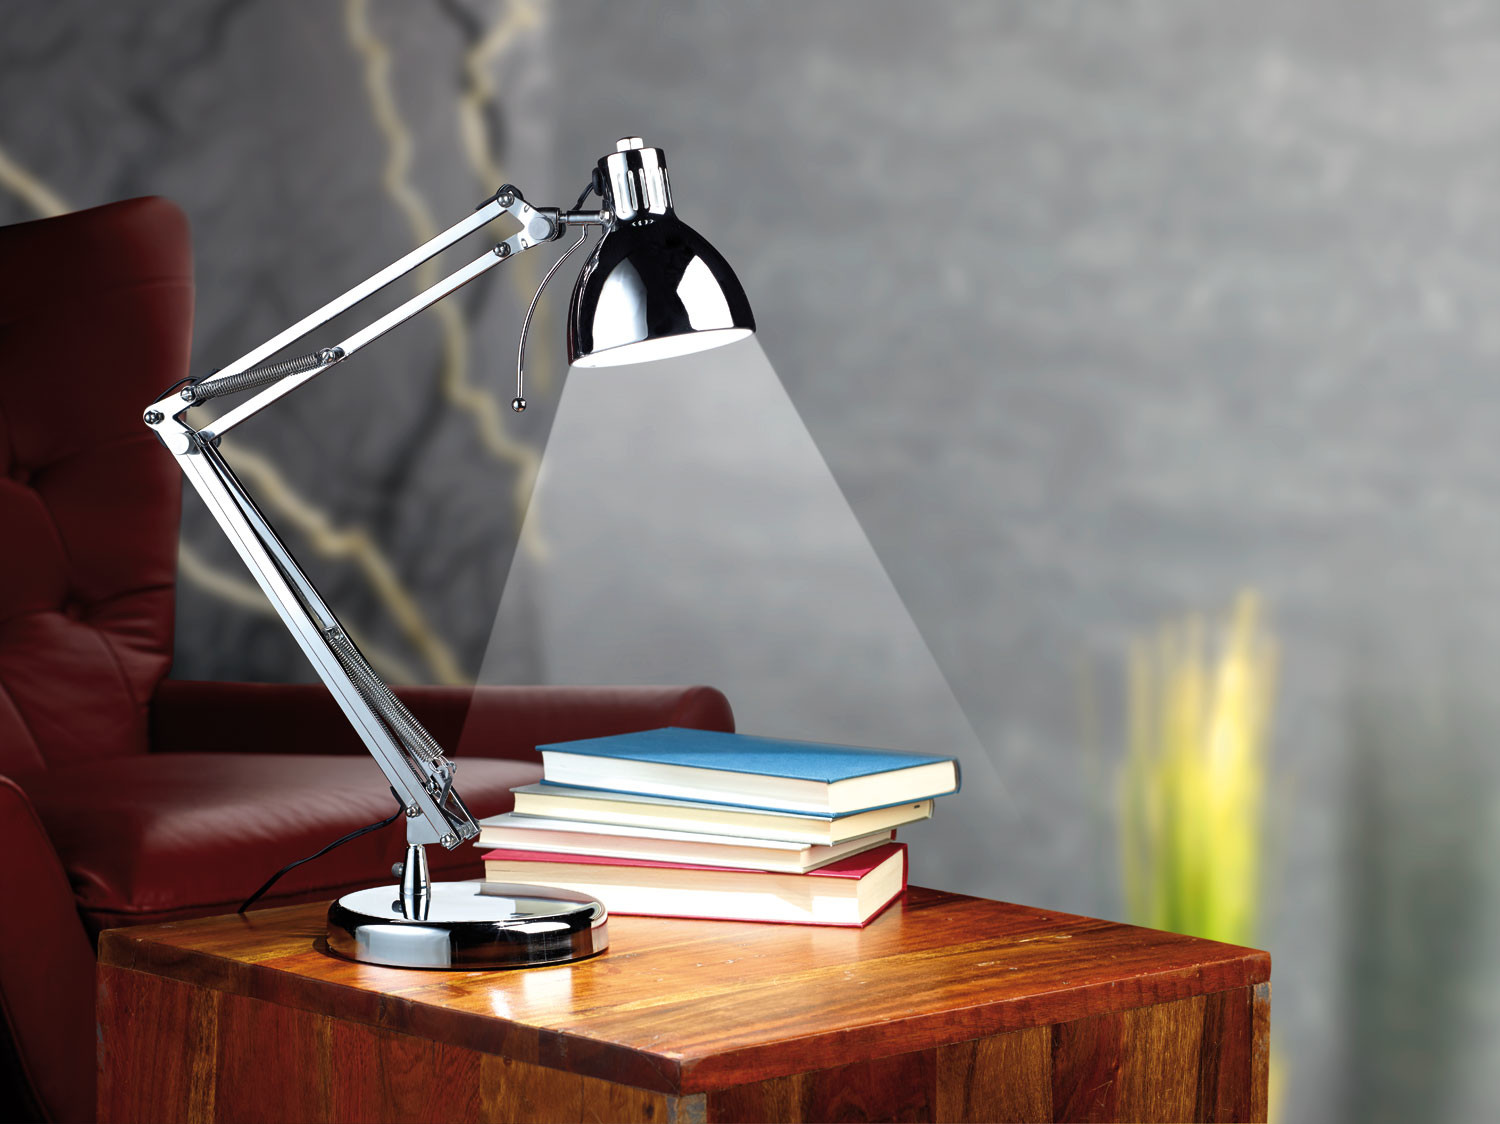 lampe de bureau articul e avec led int gr e design retro. Black Bedroom Furniture Sets. Home Design Ideas